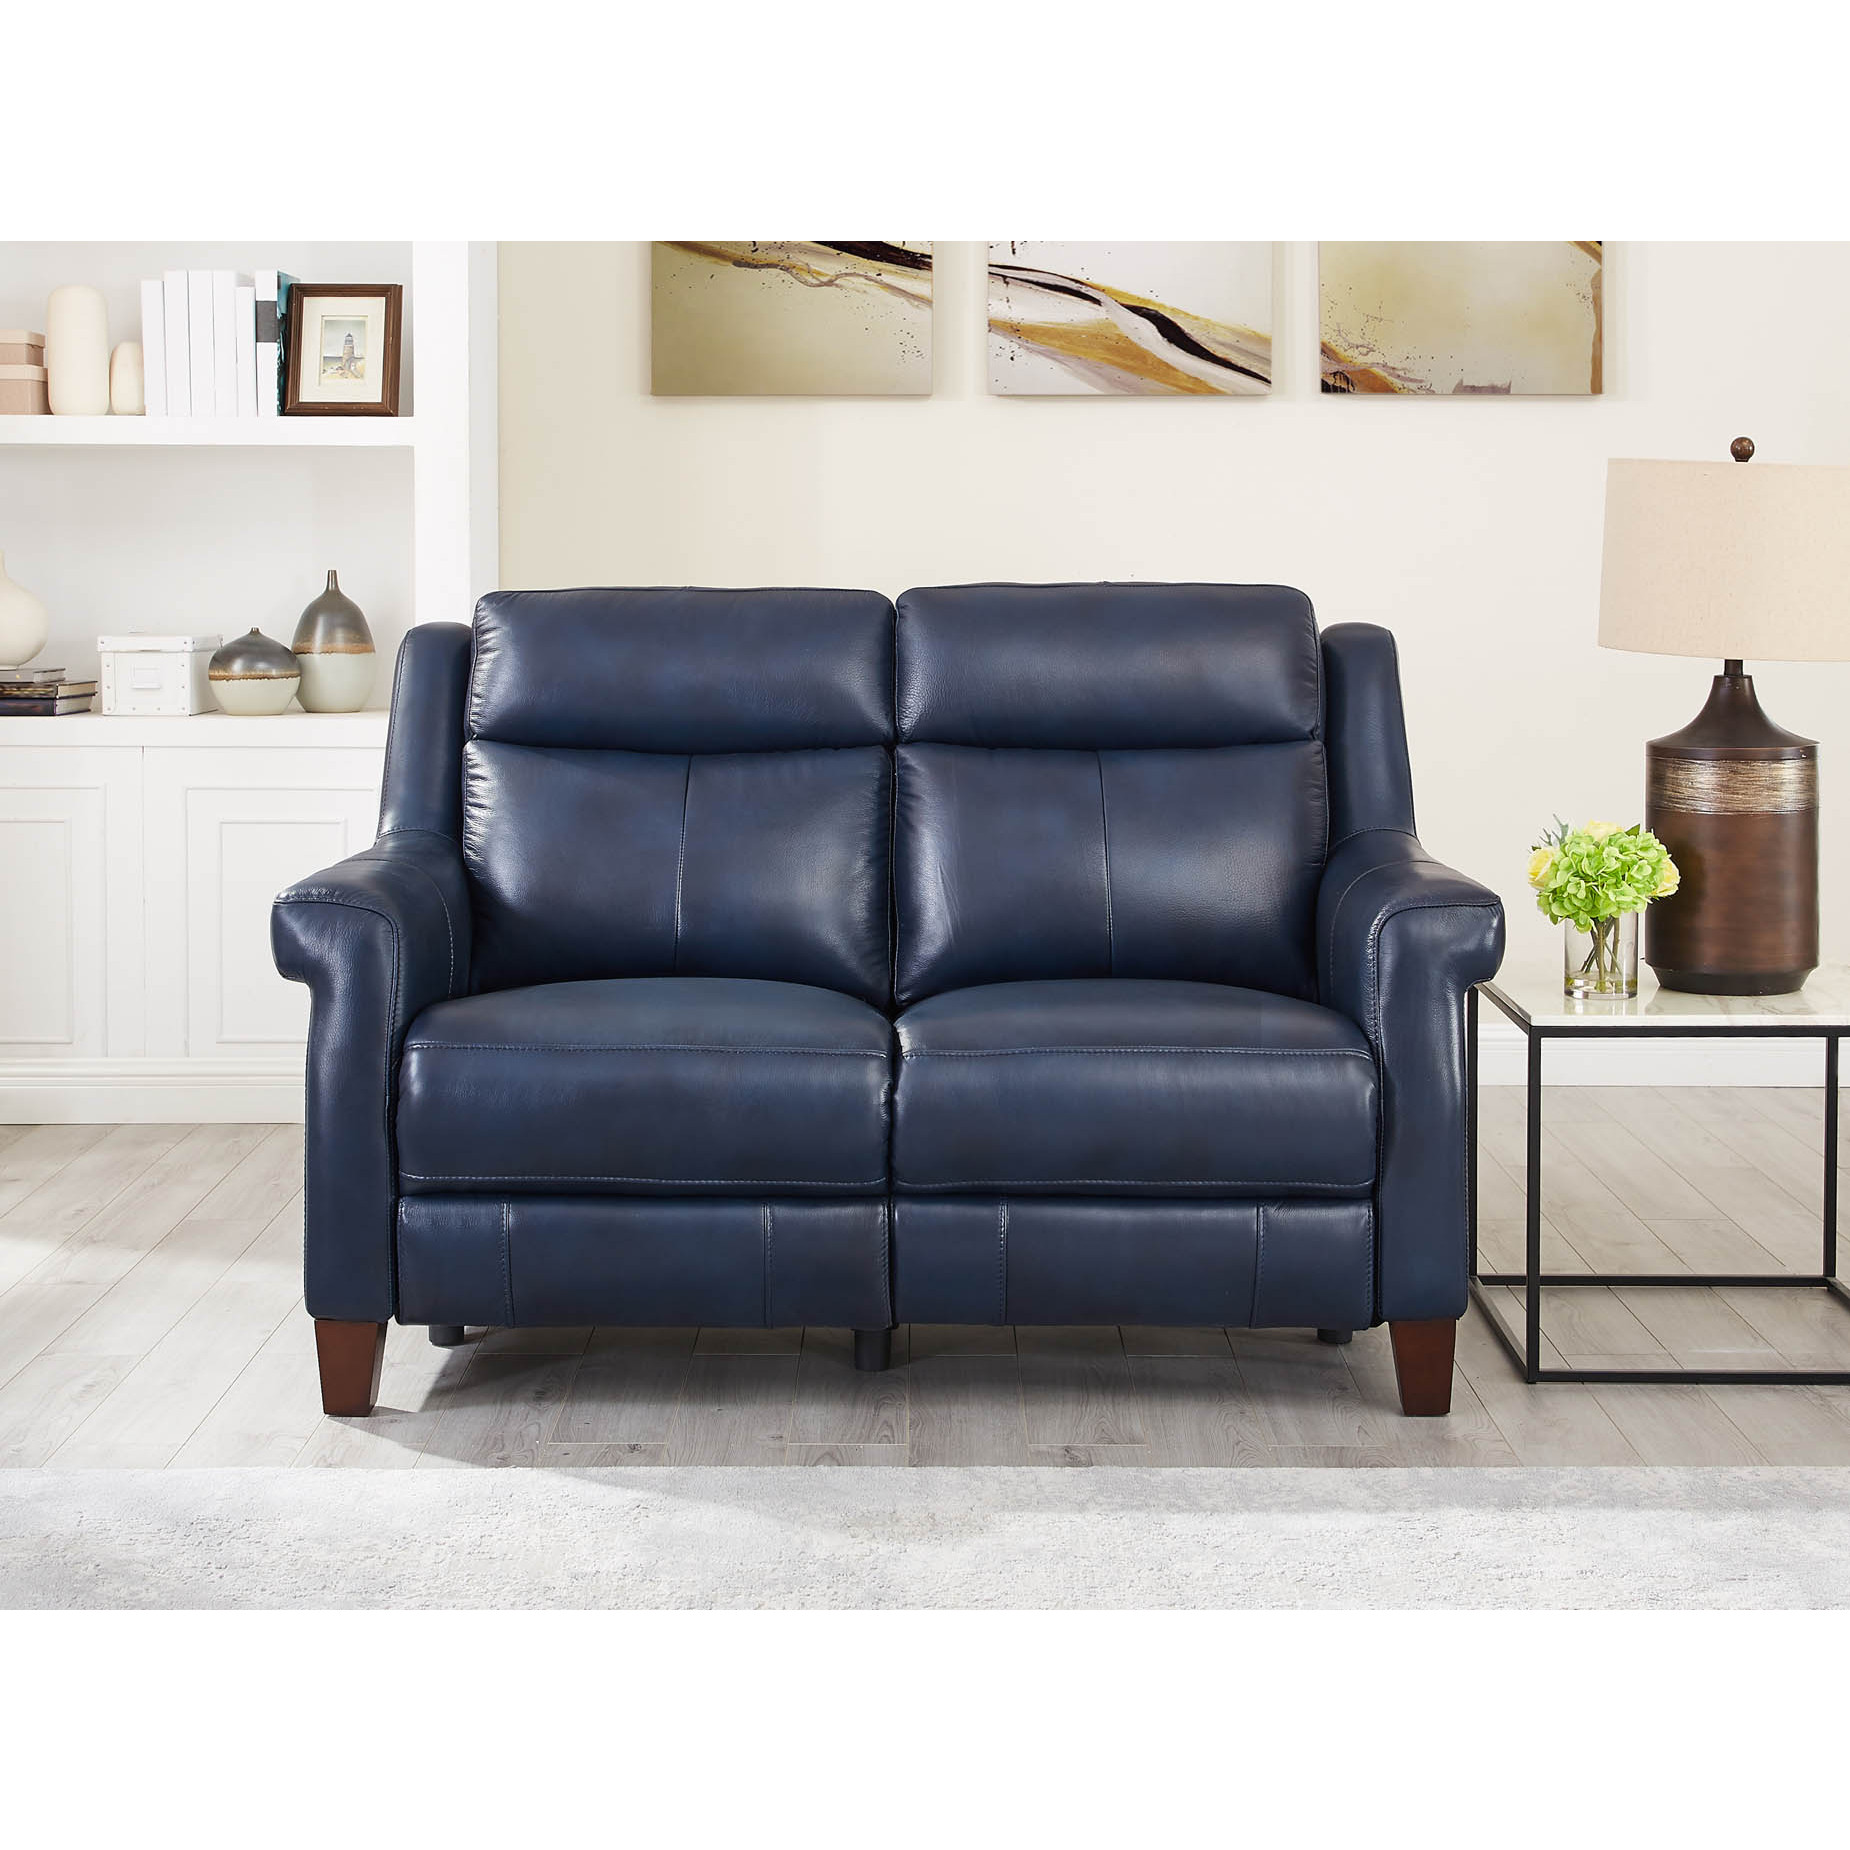 Superb Navona Leather Power Reclining Loveseat W Power Headrest Lumbar In Blue By Hydeline Leather Pdpeps Interior Chair Design Pdpepsorg